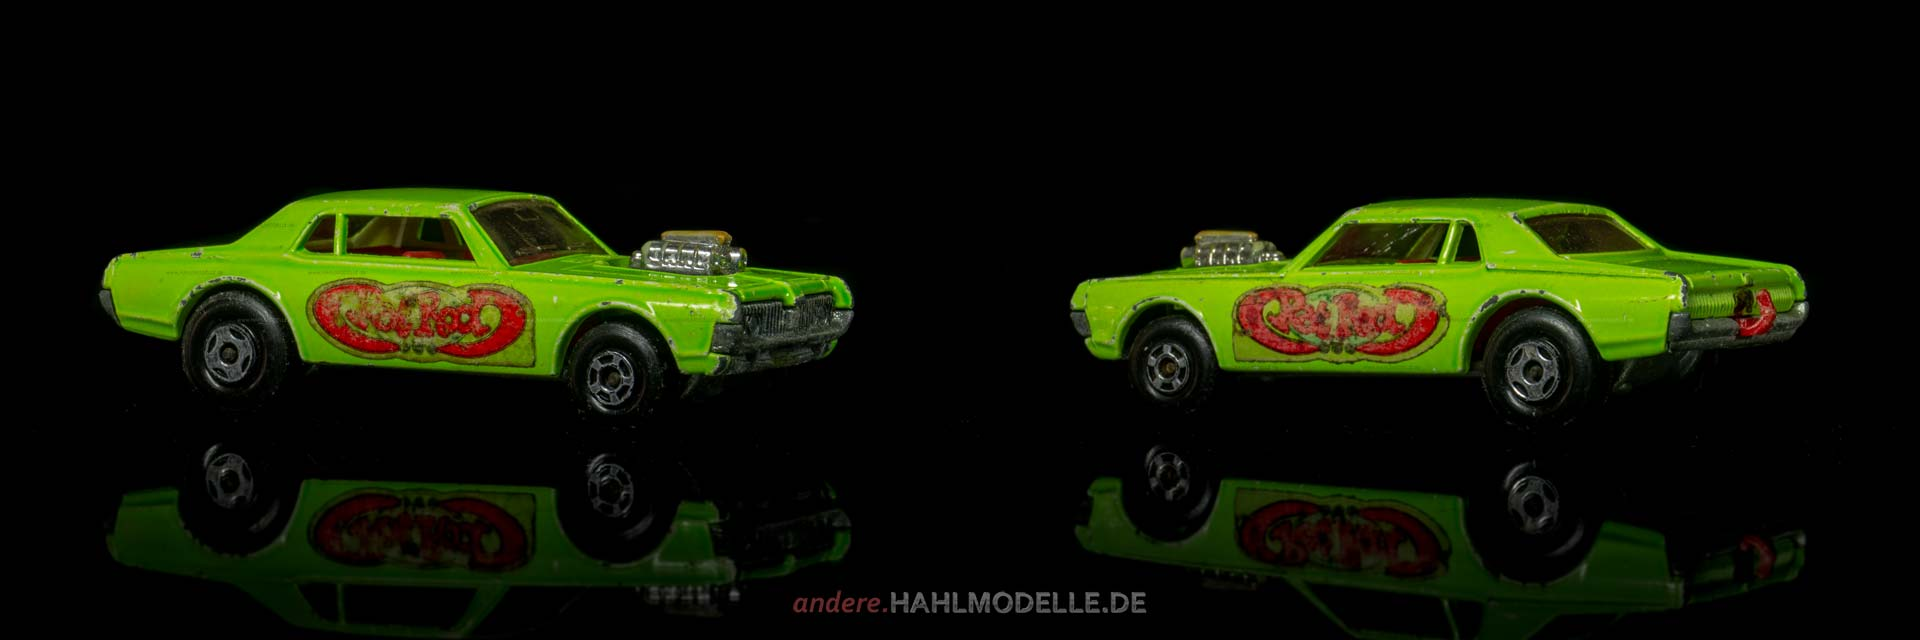 Mercury Cougar | Coupé | Lesney Products & Co. Ltd. | Matchbox Superfast Rat Rod Dragster | www.andere.hahlmodelle.de